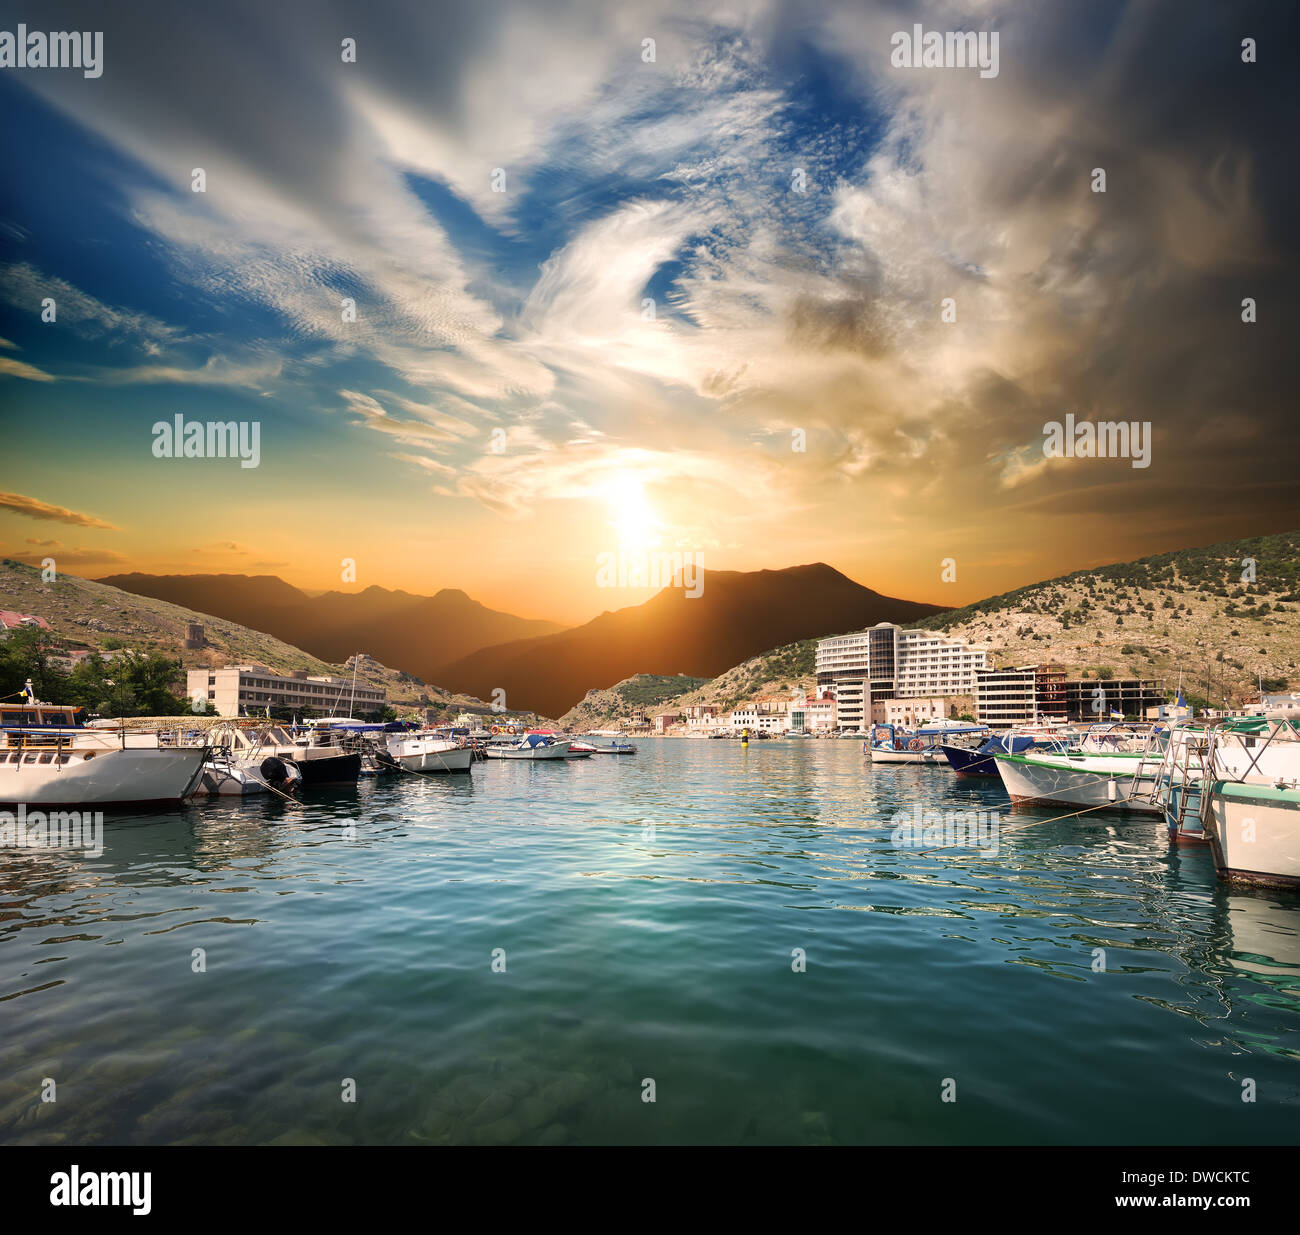 Bay of Balaclava with boats at sunset - Stock Image